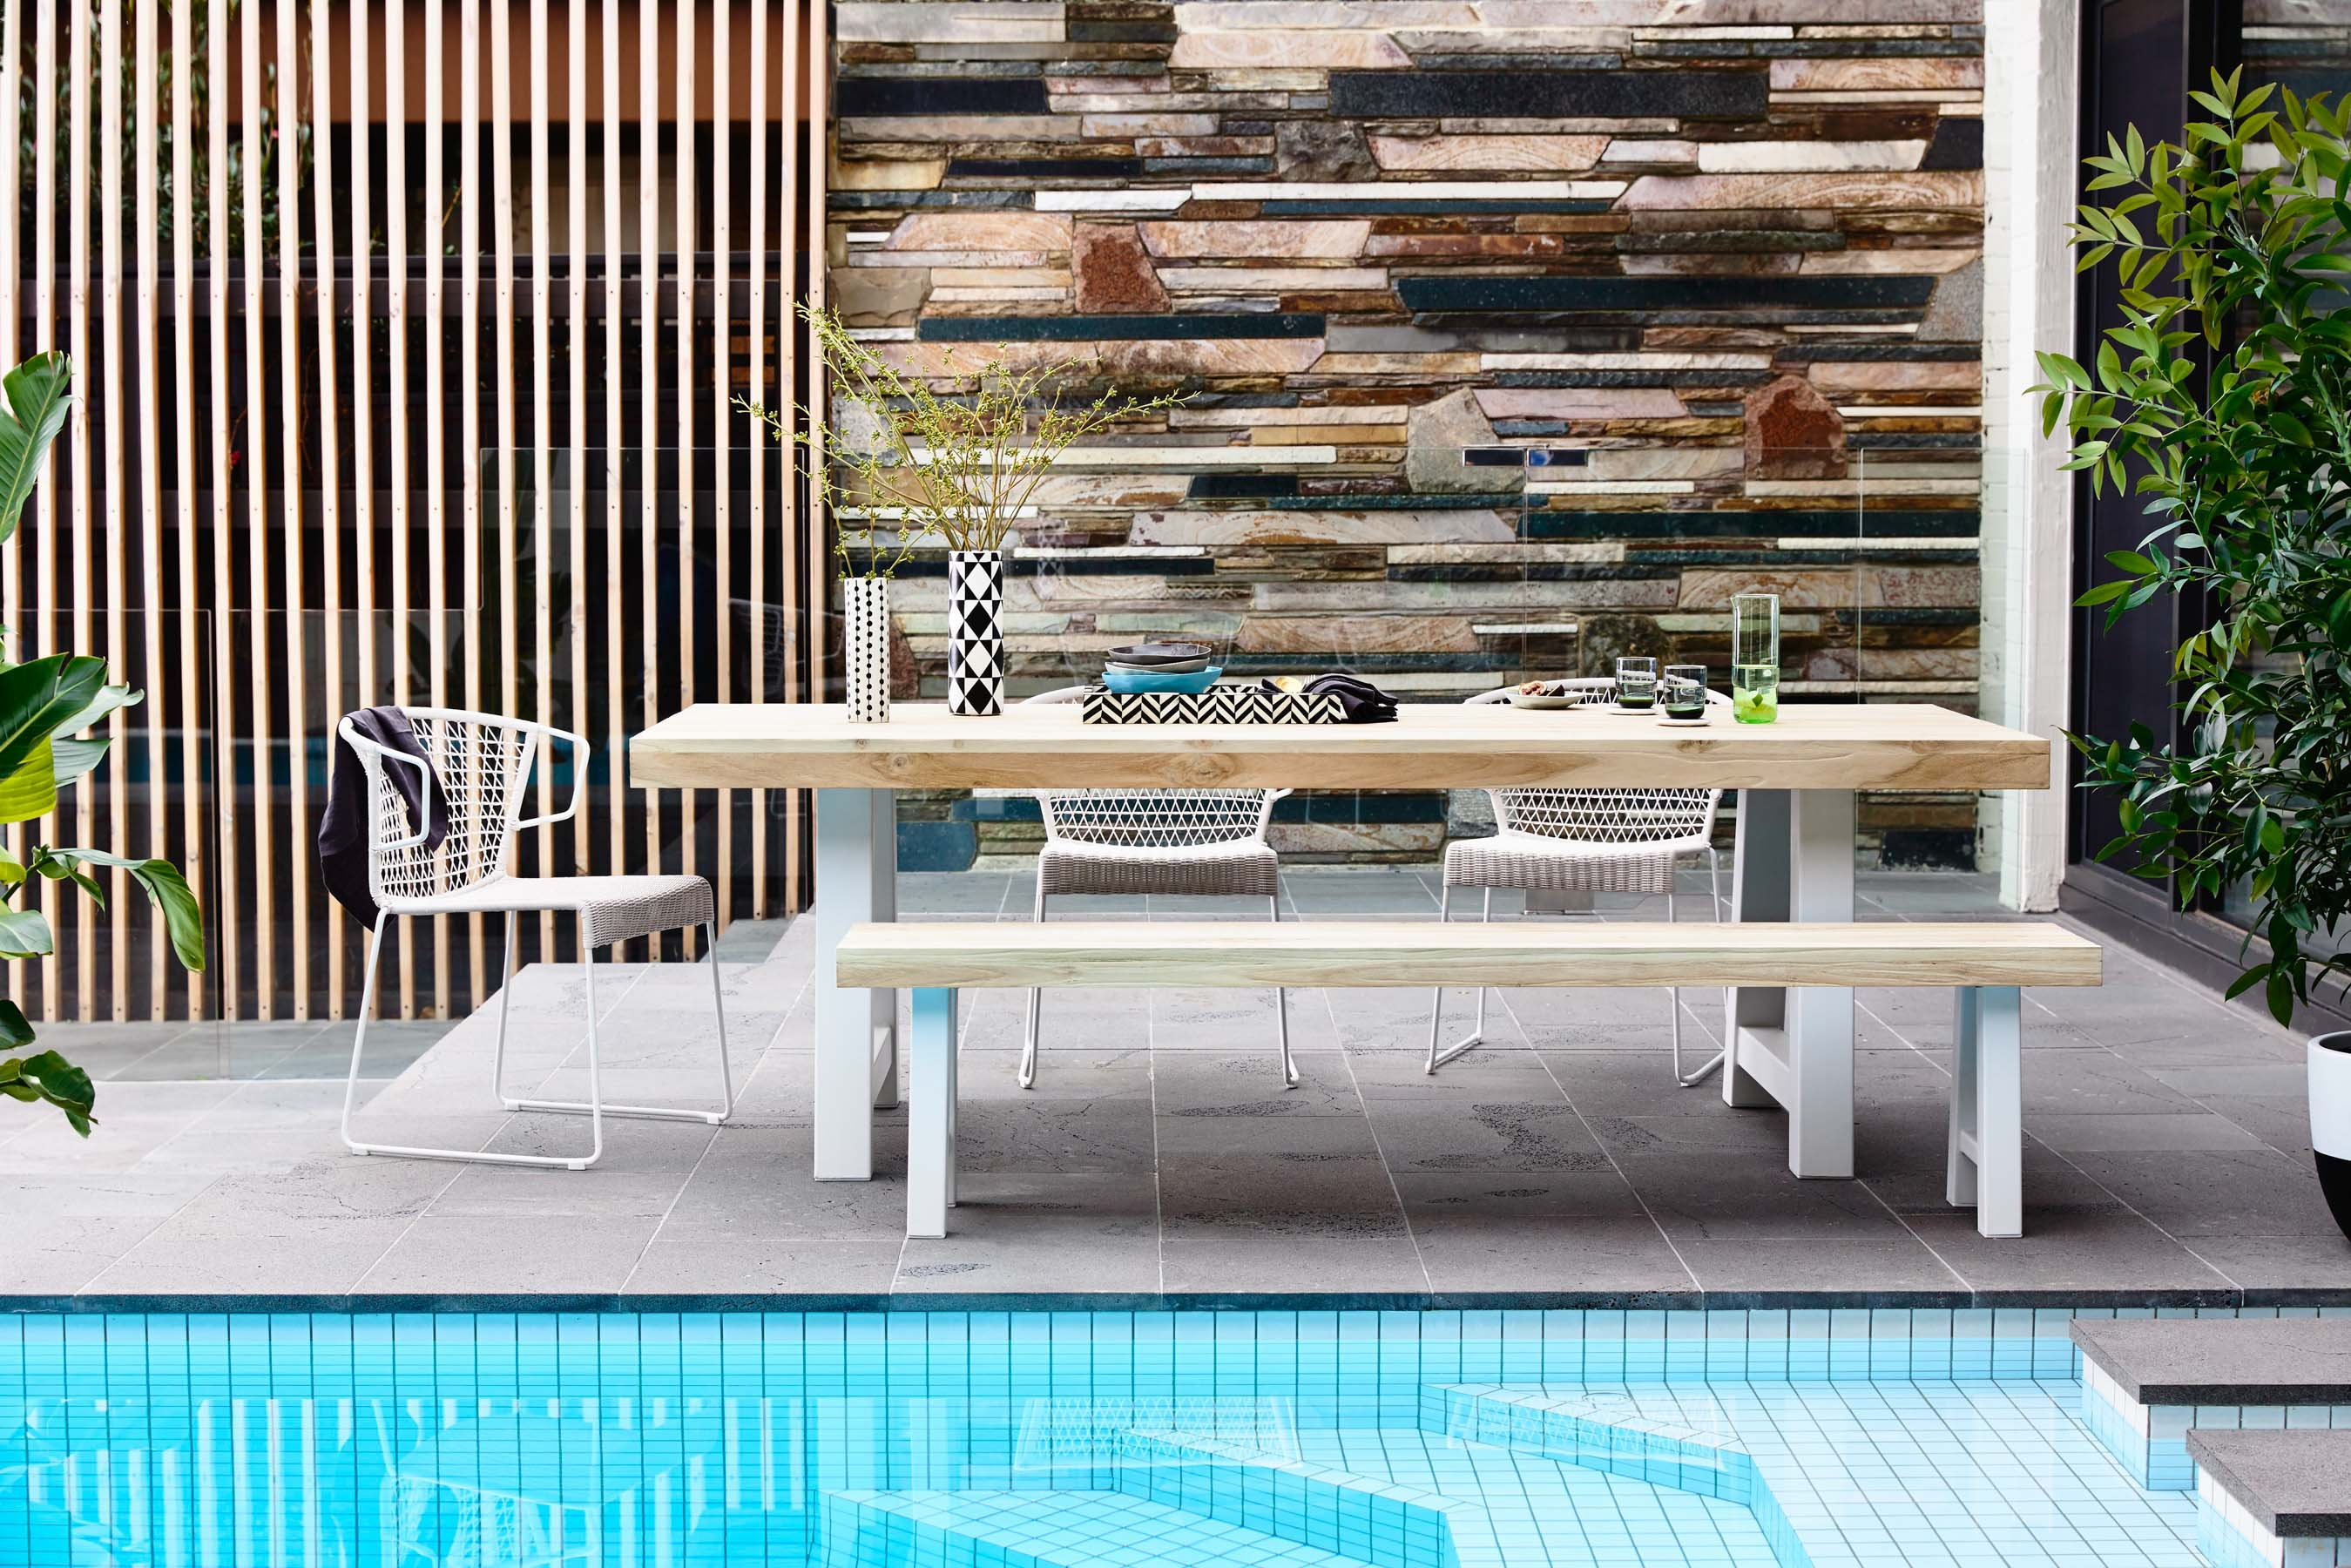 Furniture Gallery Dining-Chairs-Benches-Stools granada-beach-bench-03